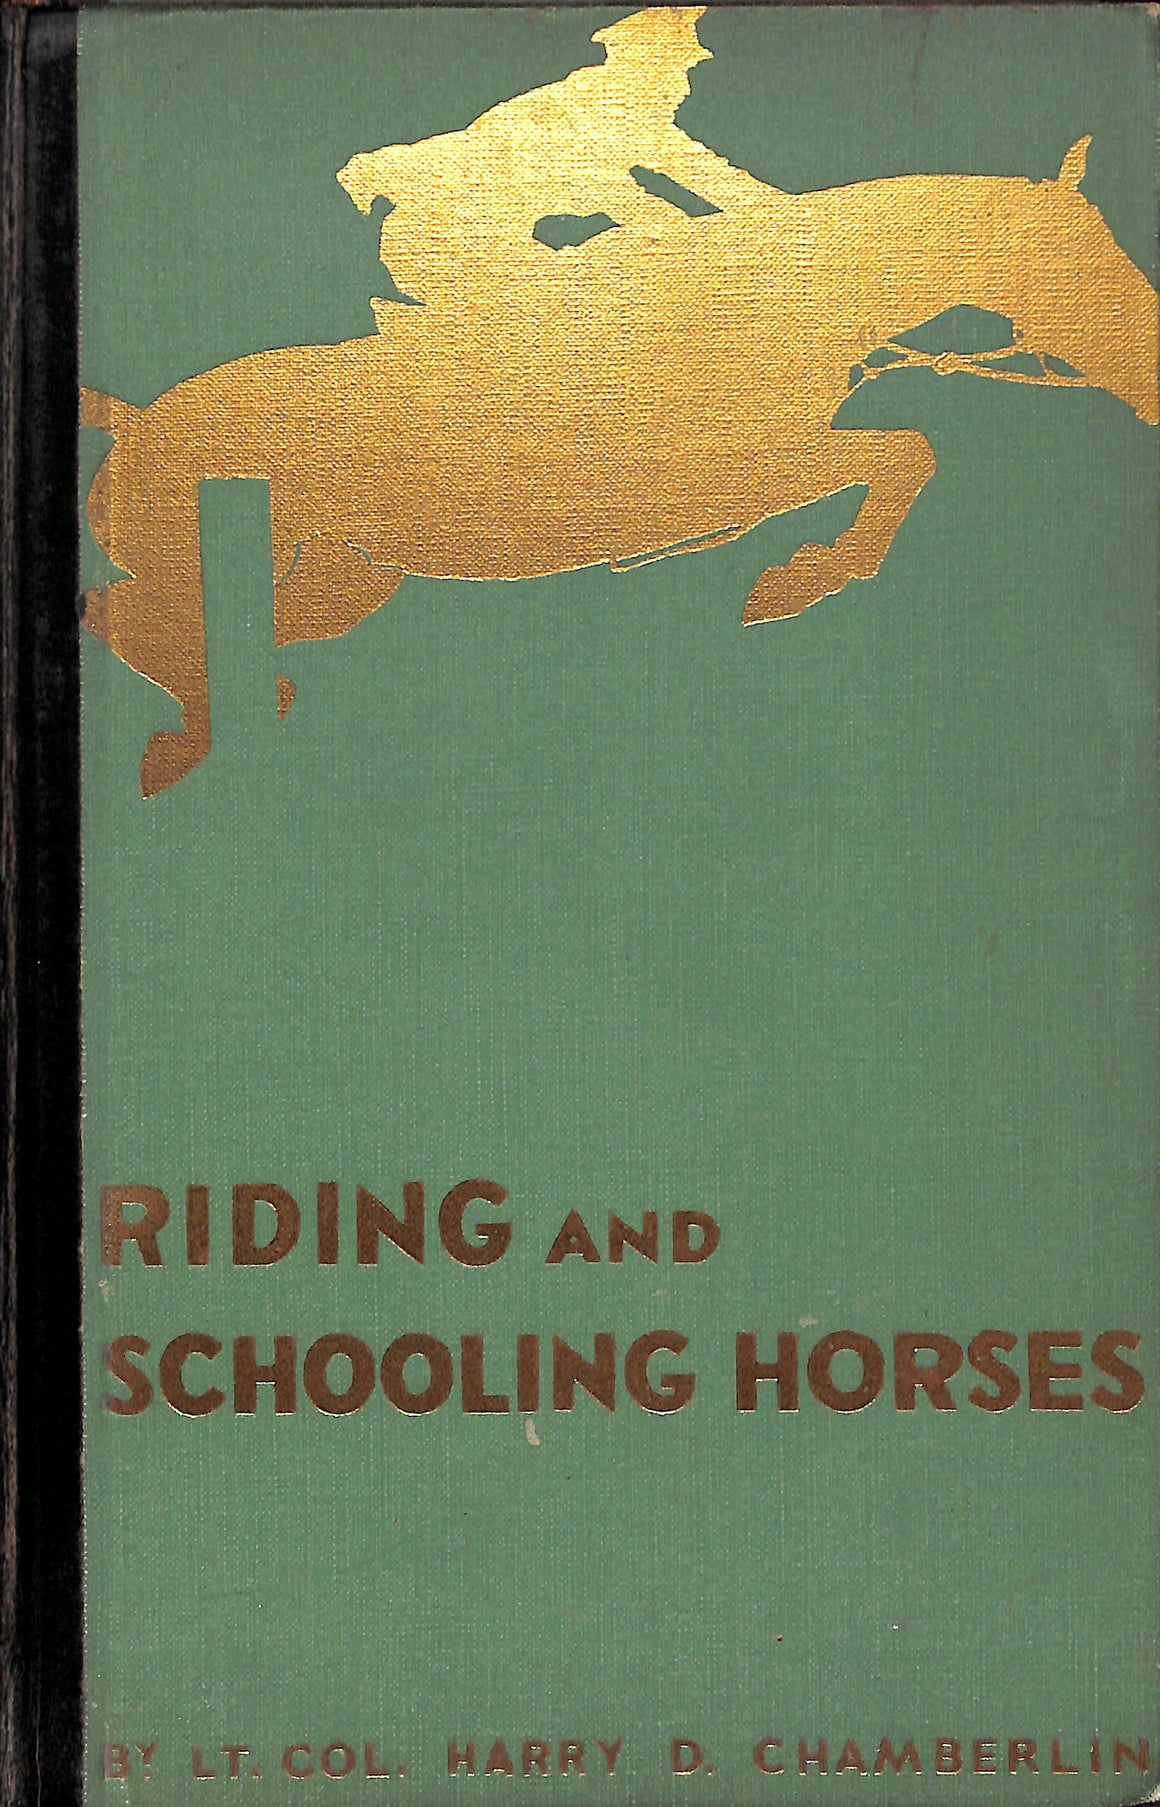 Riding and Schooling Horses